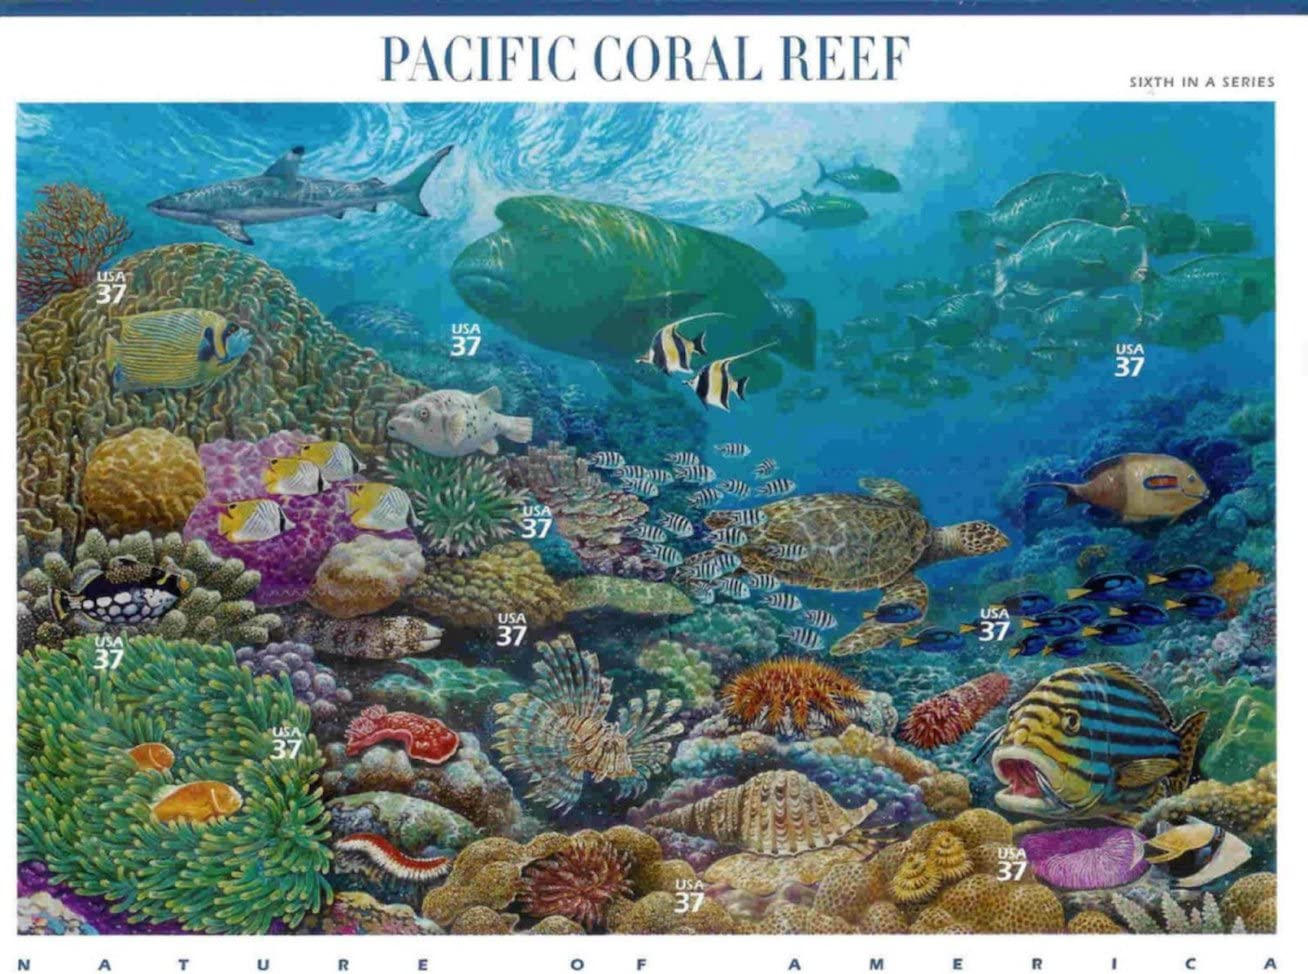 Pacific Coral Reef (Nature of America), Full Sheet of 10 x 37-Cent Postage Stamps, USA 2004, Scott 3831